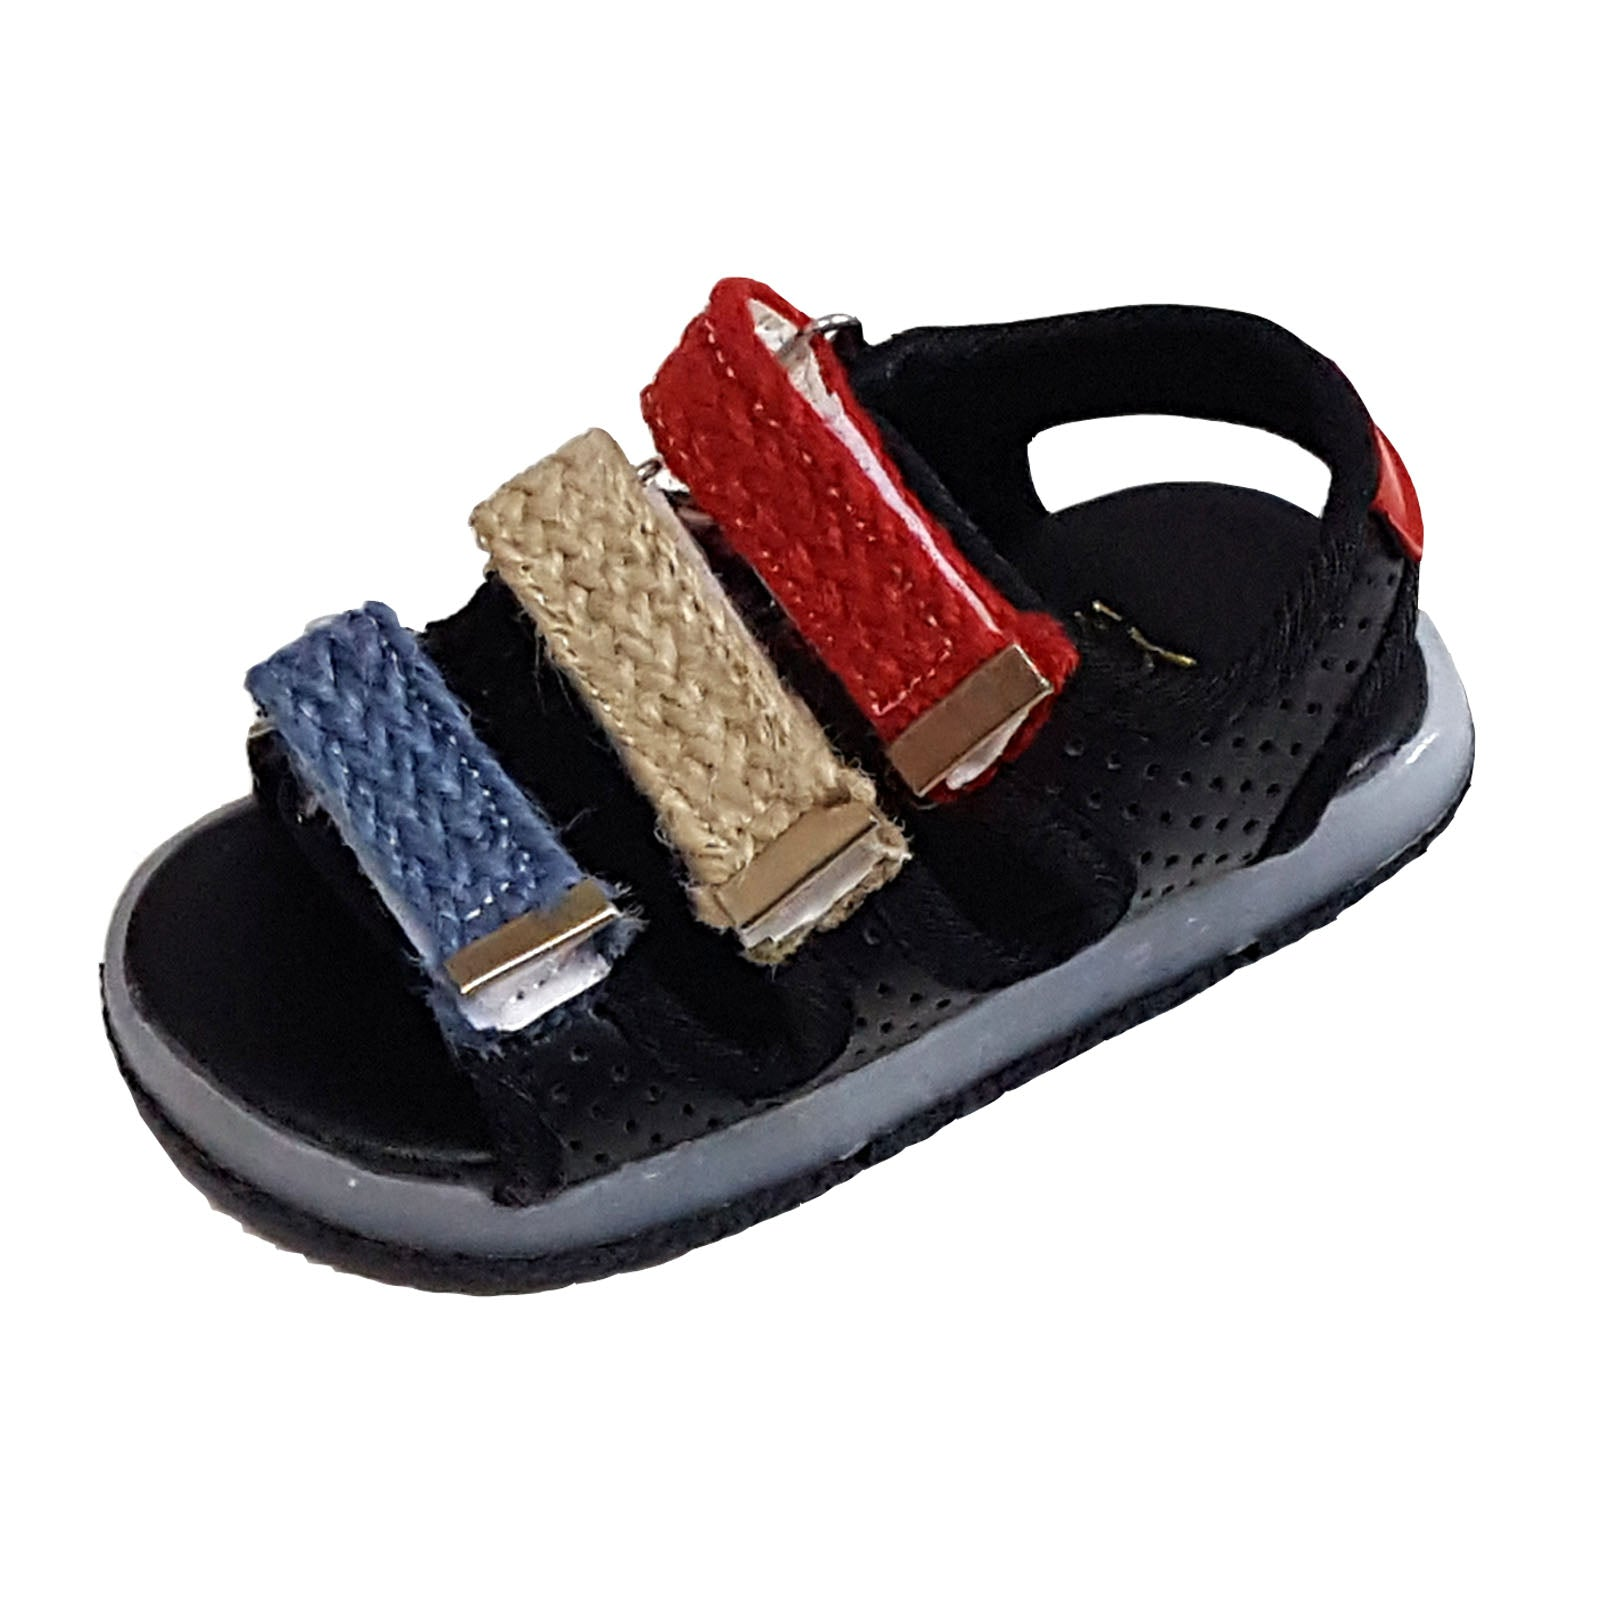 L206 Marineford Black Anti-Slip Sandals